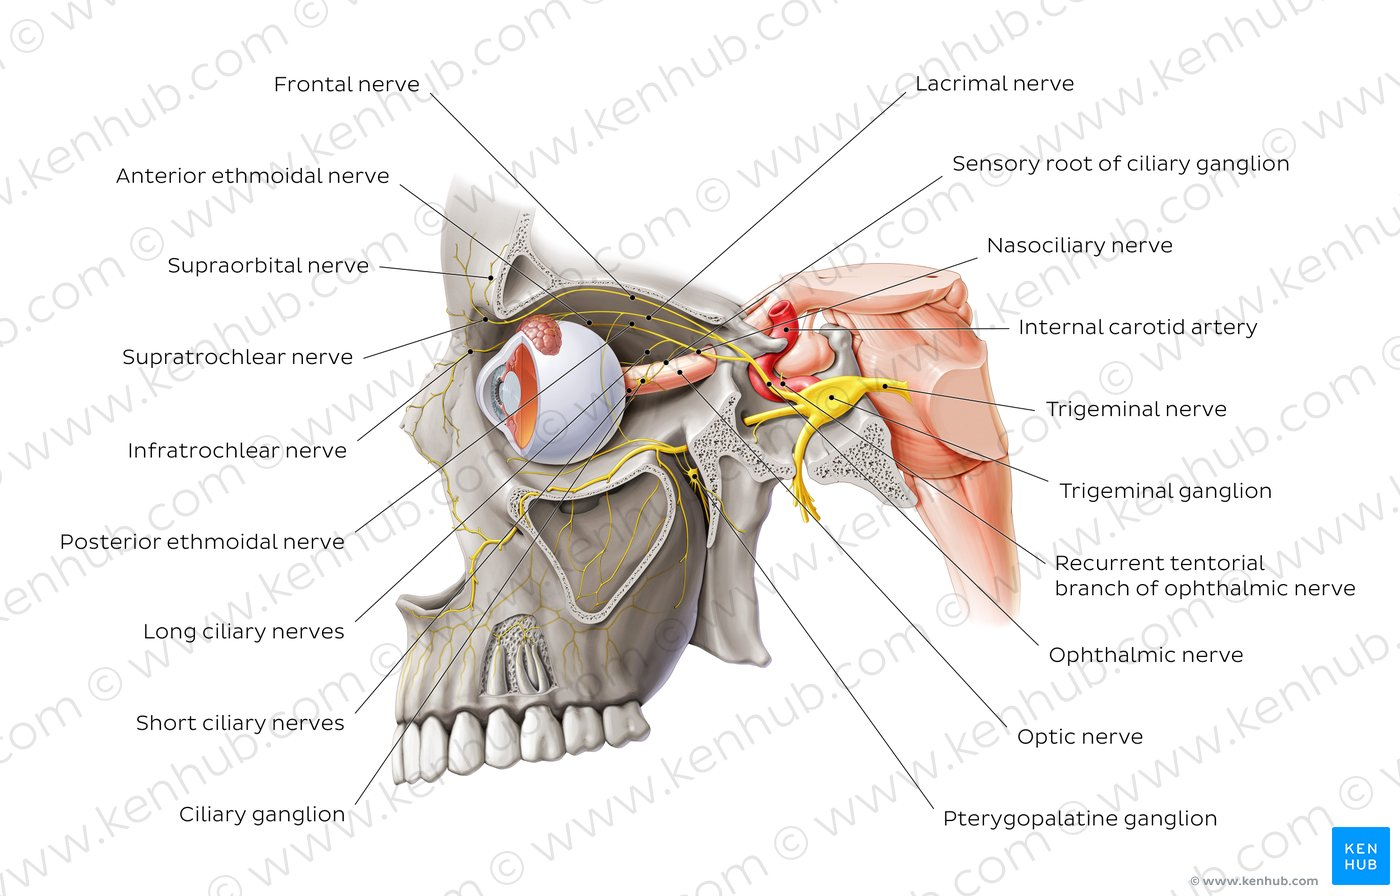 trigeminal nerve diagram starter wiring chevy 305 pictures ophthalmic anatomy kenhub